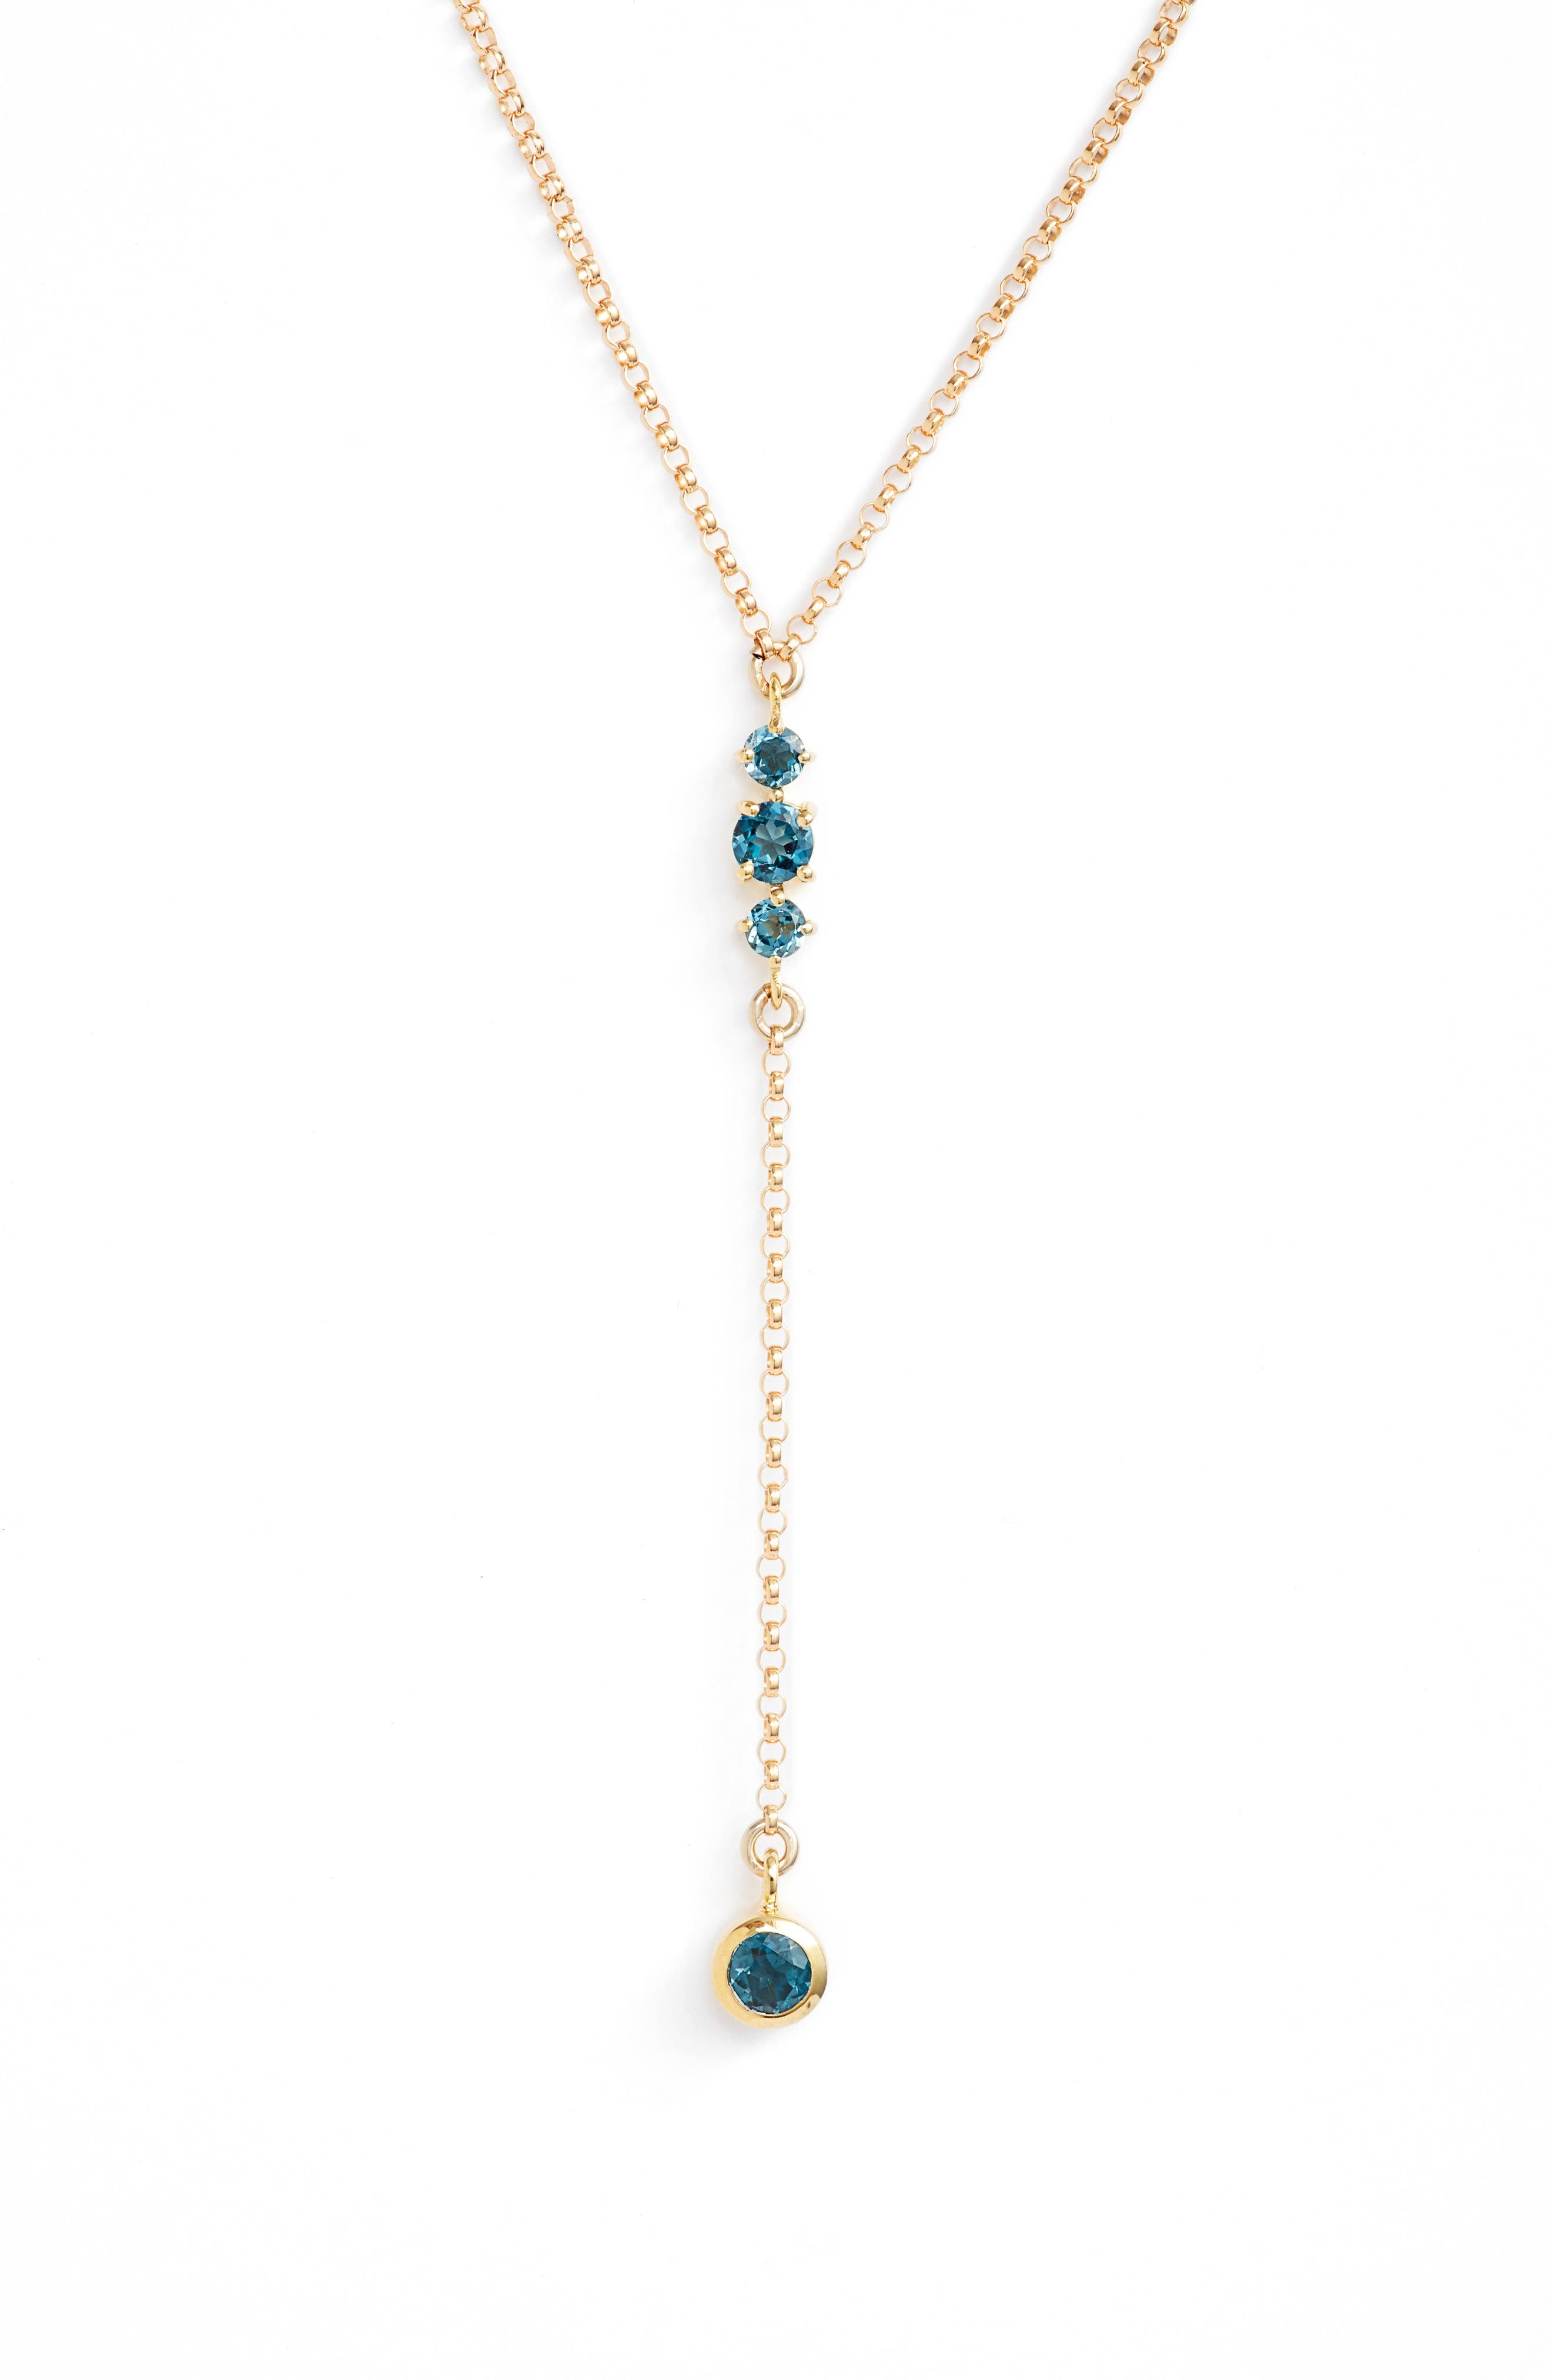 Moonstone & Gold Y-Necklace,                             Main thumbnail 1, color,                             400